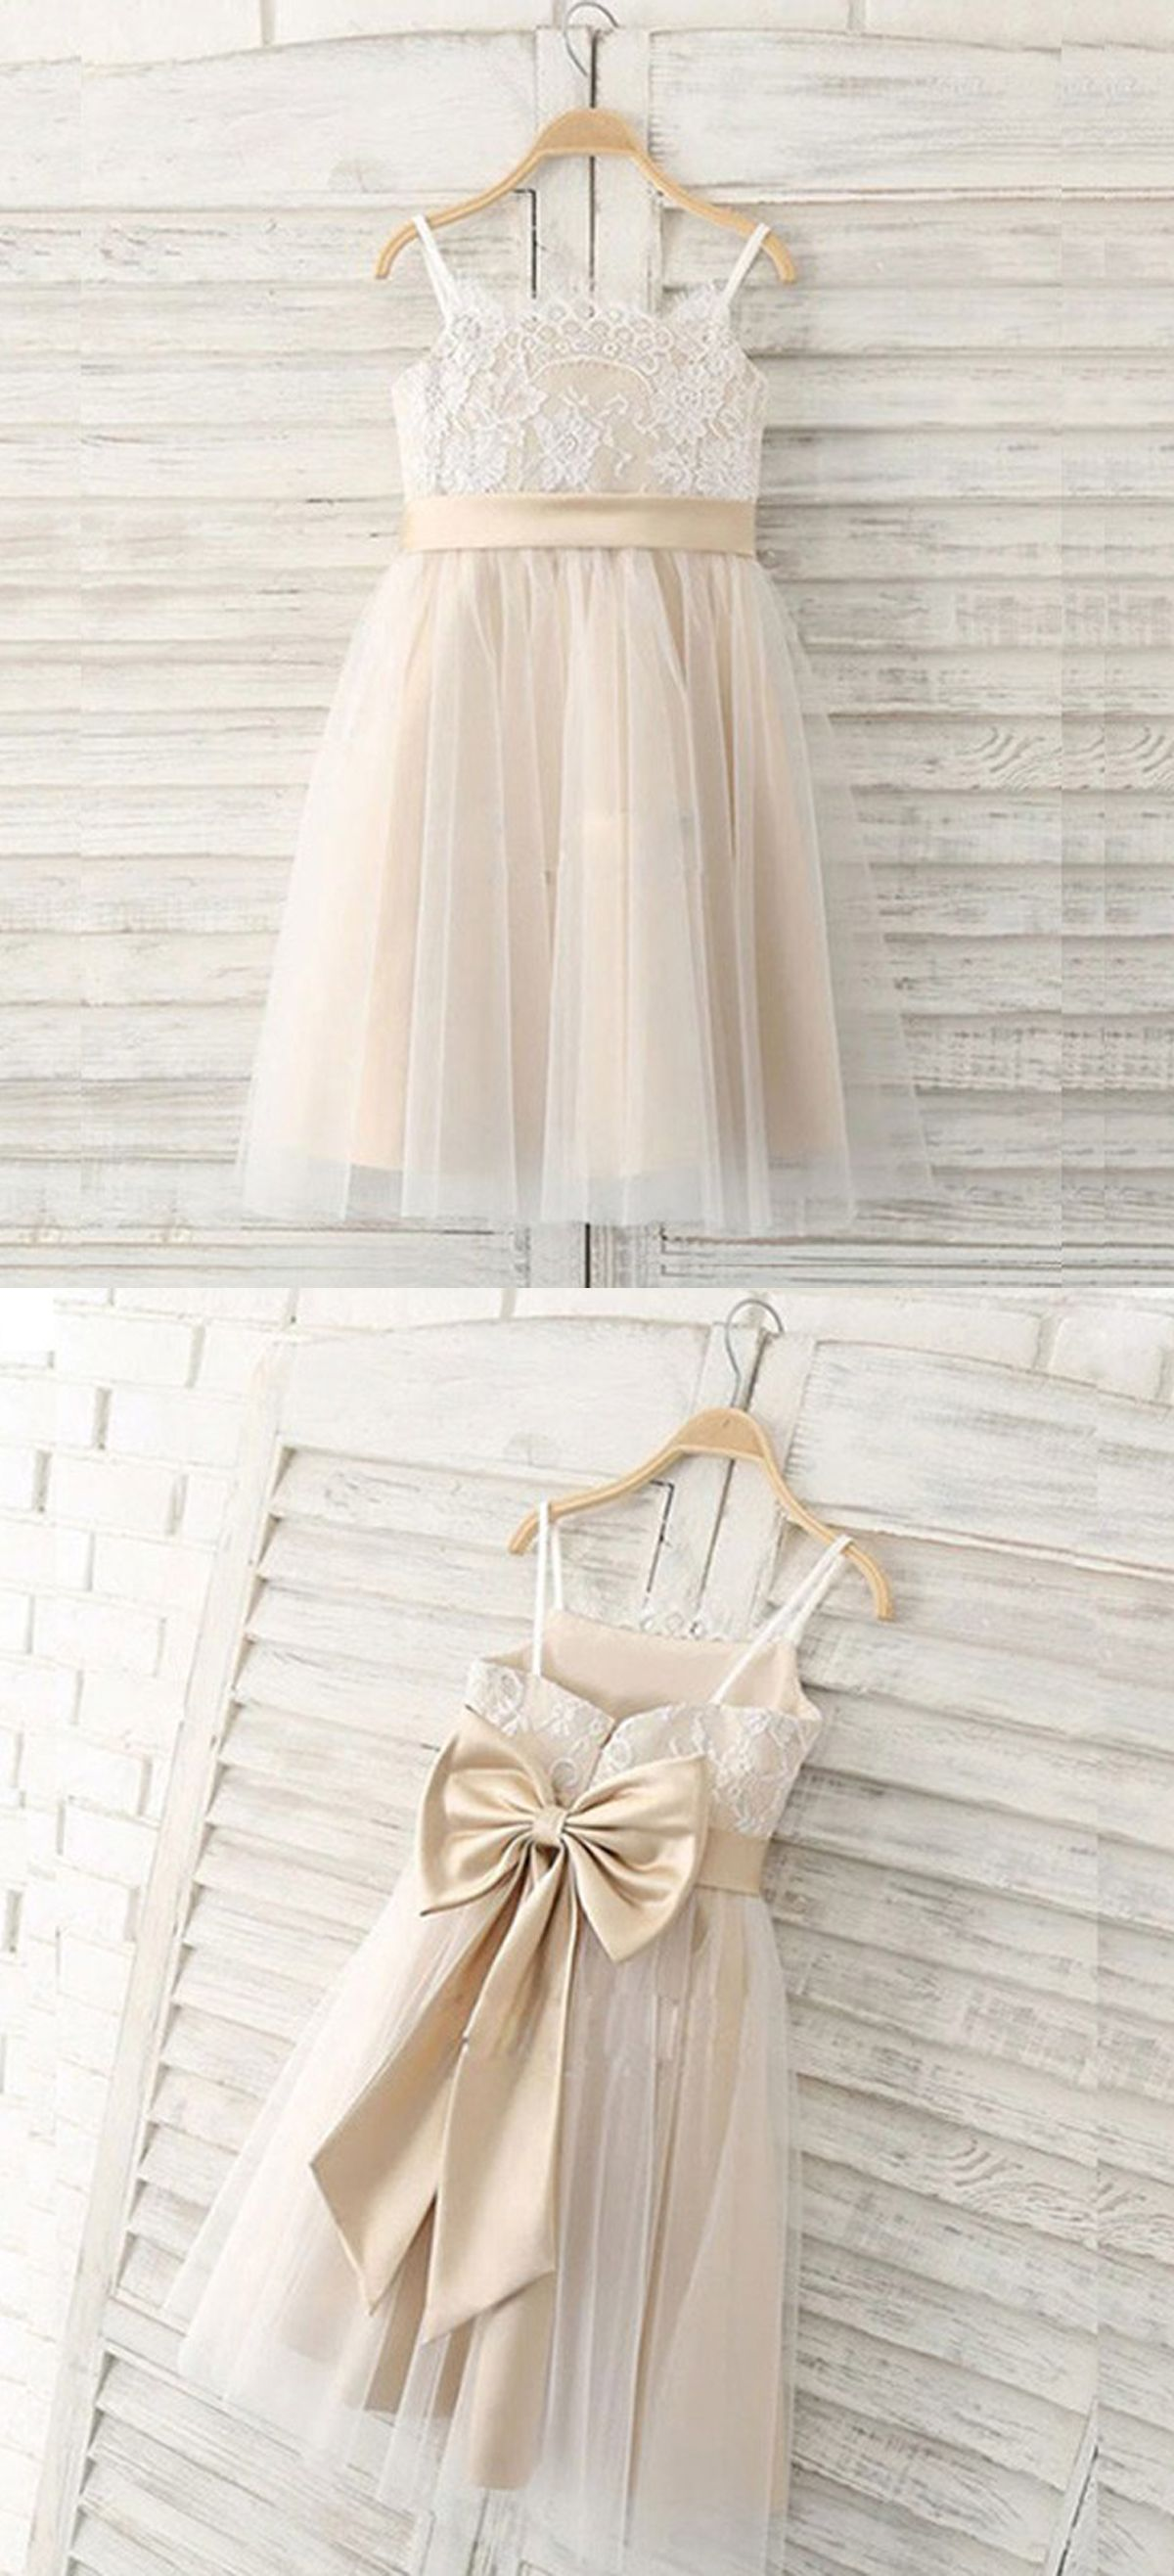 803637c9f311 A-Line Spaghetti Straps Light Champagne Flower Girl Dress with Lace